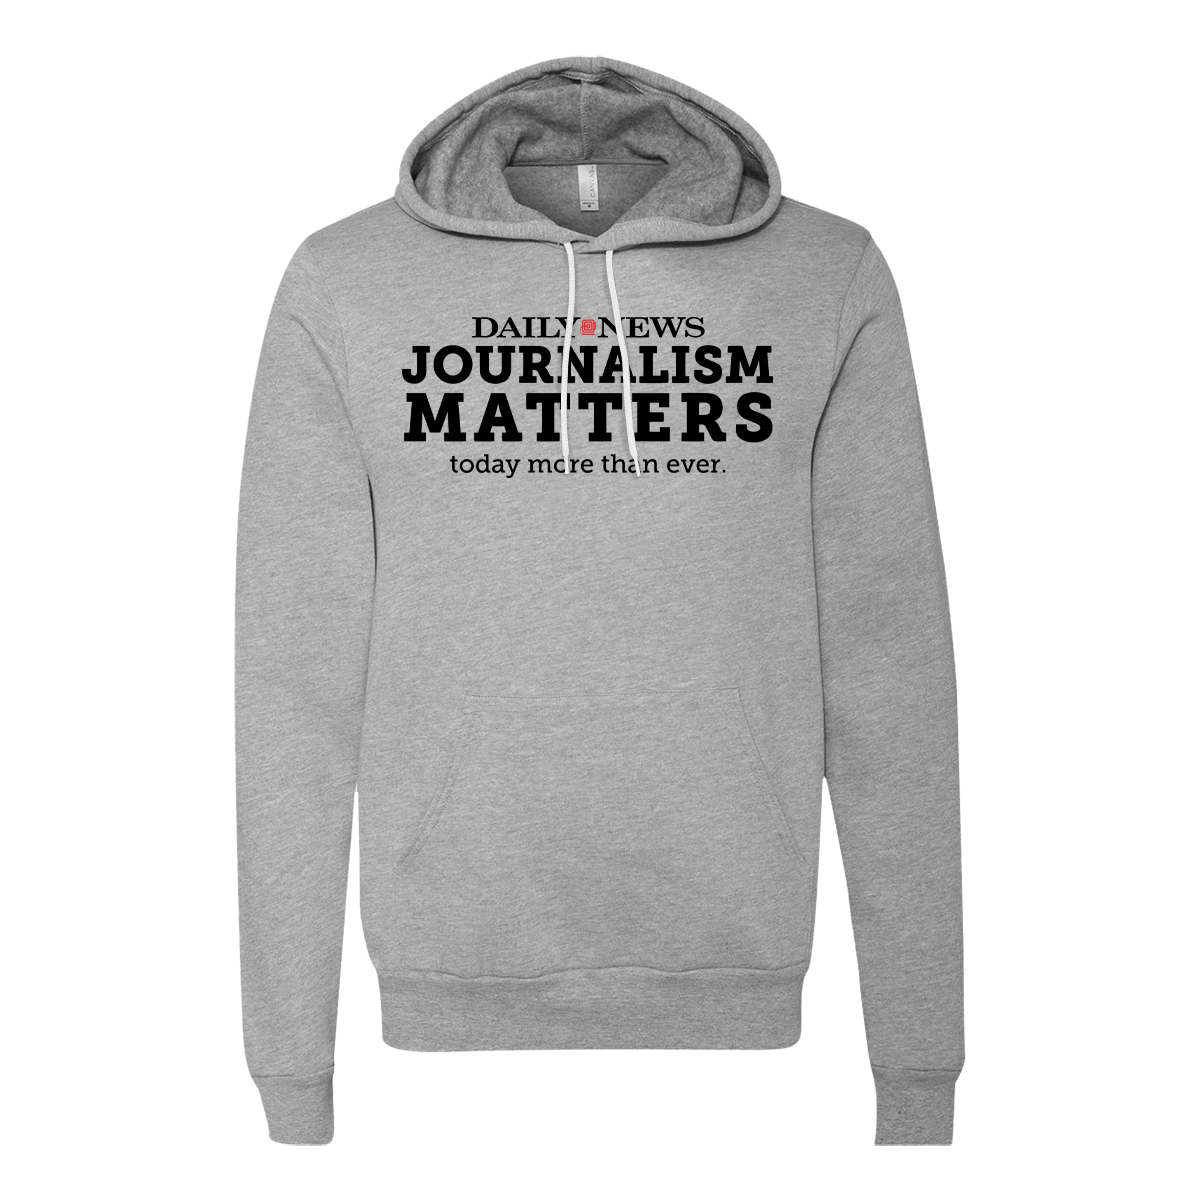 Daily News Journalism Matters Hoodie